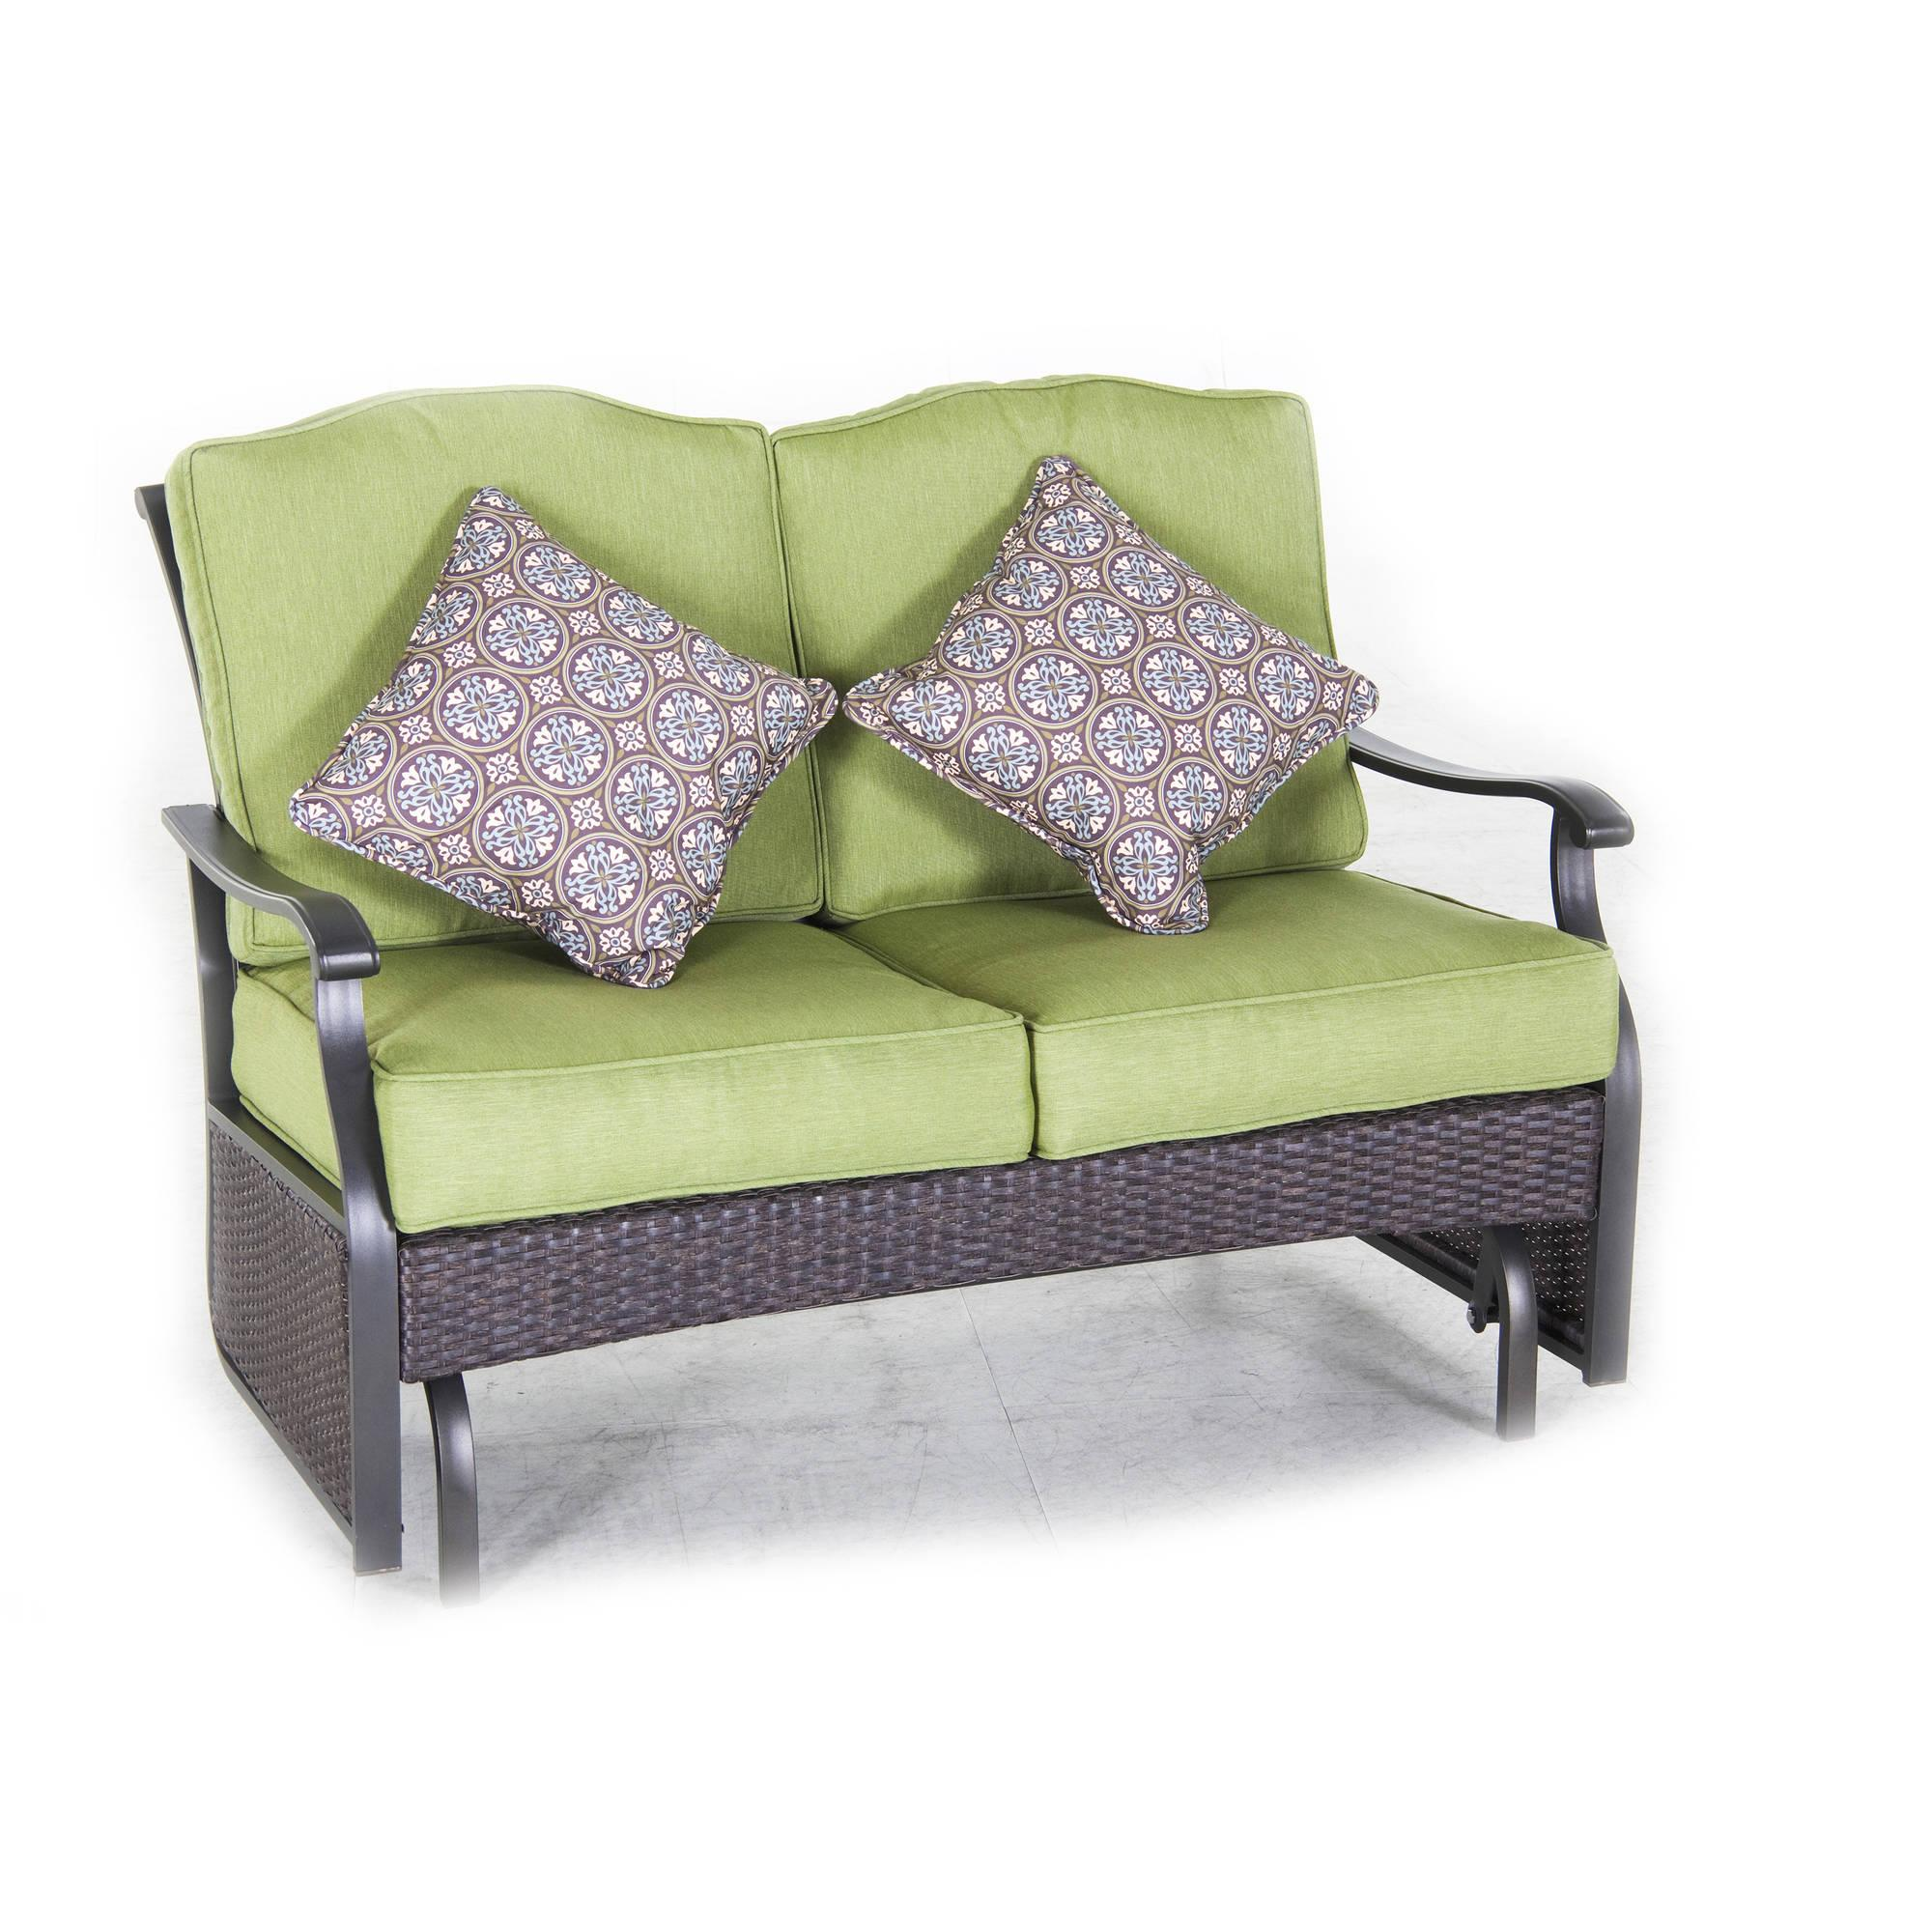 Better Homes and Gardens Providence Outdoor Glider Bench, Green ...